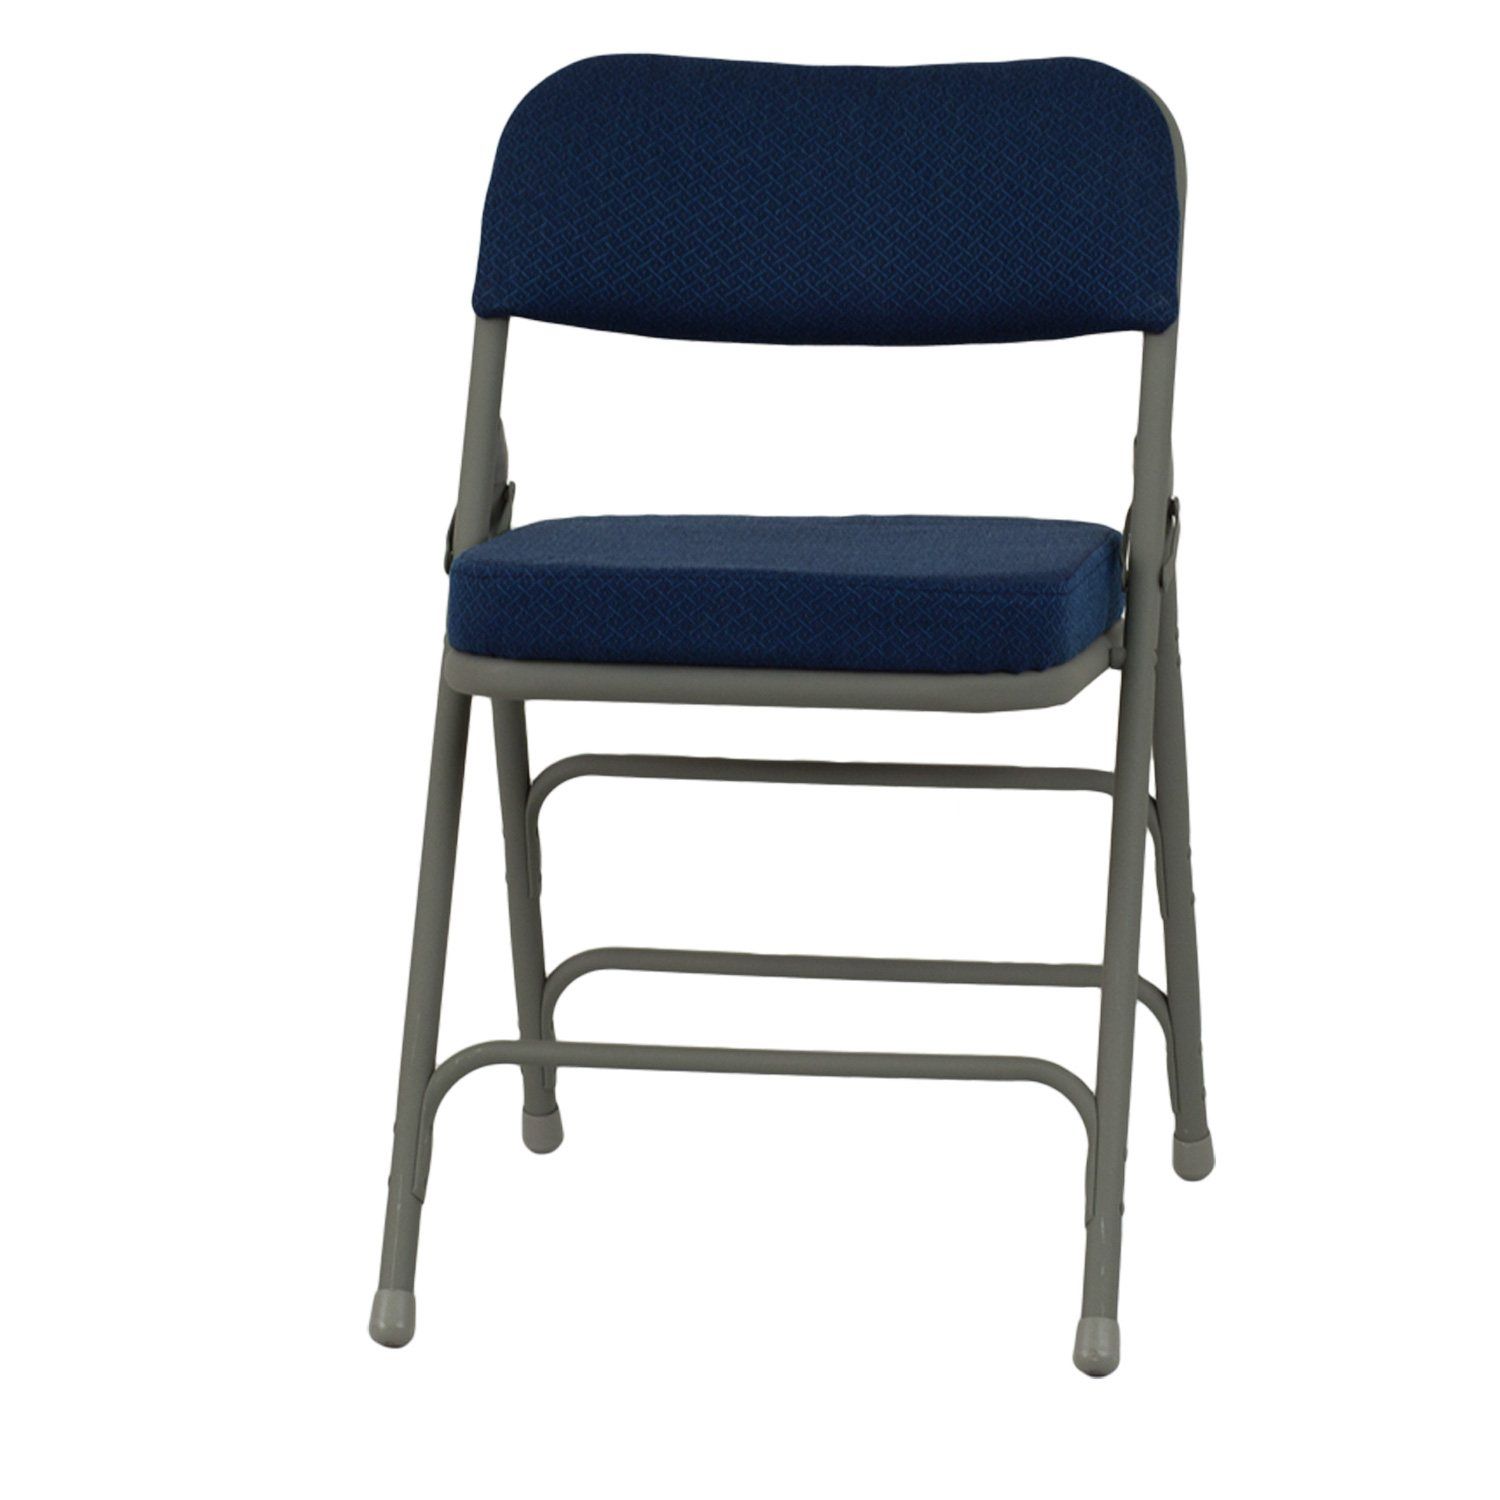 "Hercules 2 1 2"" Padded Metal Folding Chairs Navy Sam s Club"